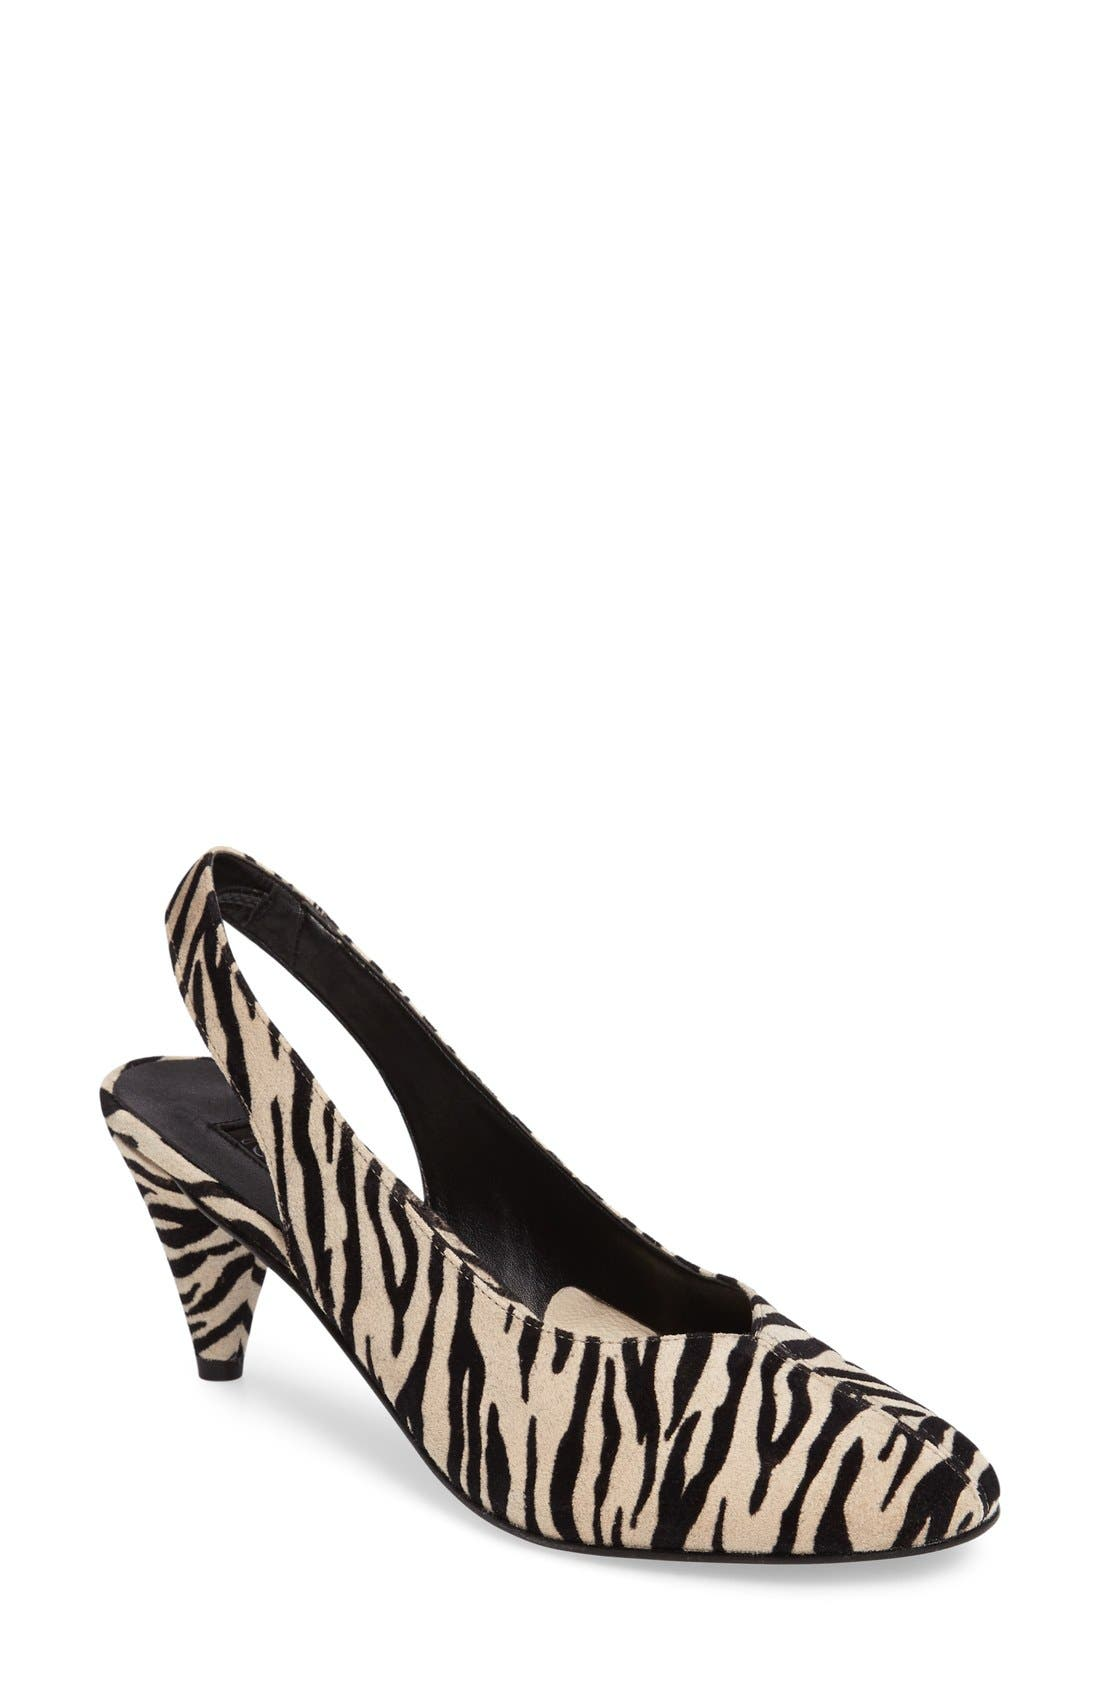 'Jazz' Slingback Pump,                             Main thumbnail 1, color,                             Black Multi